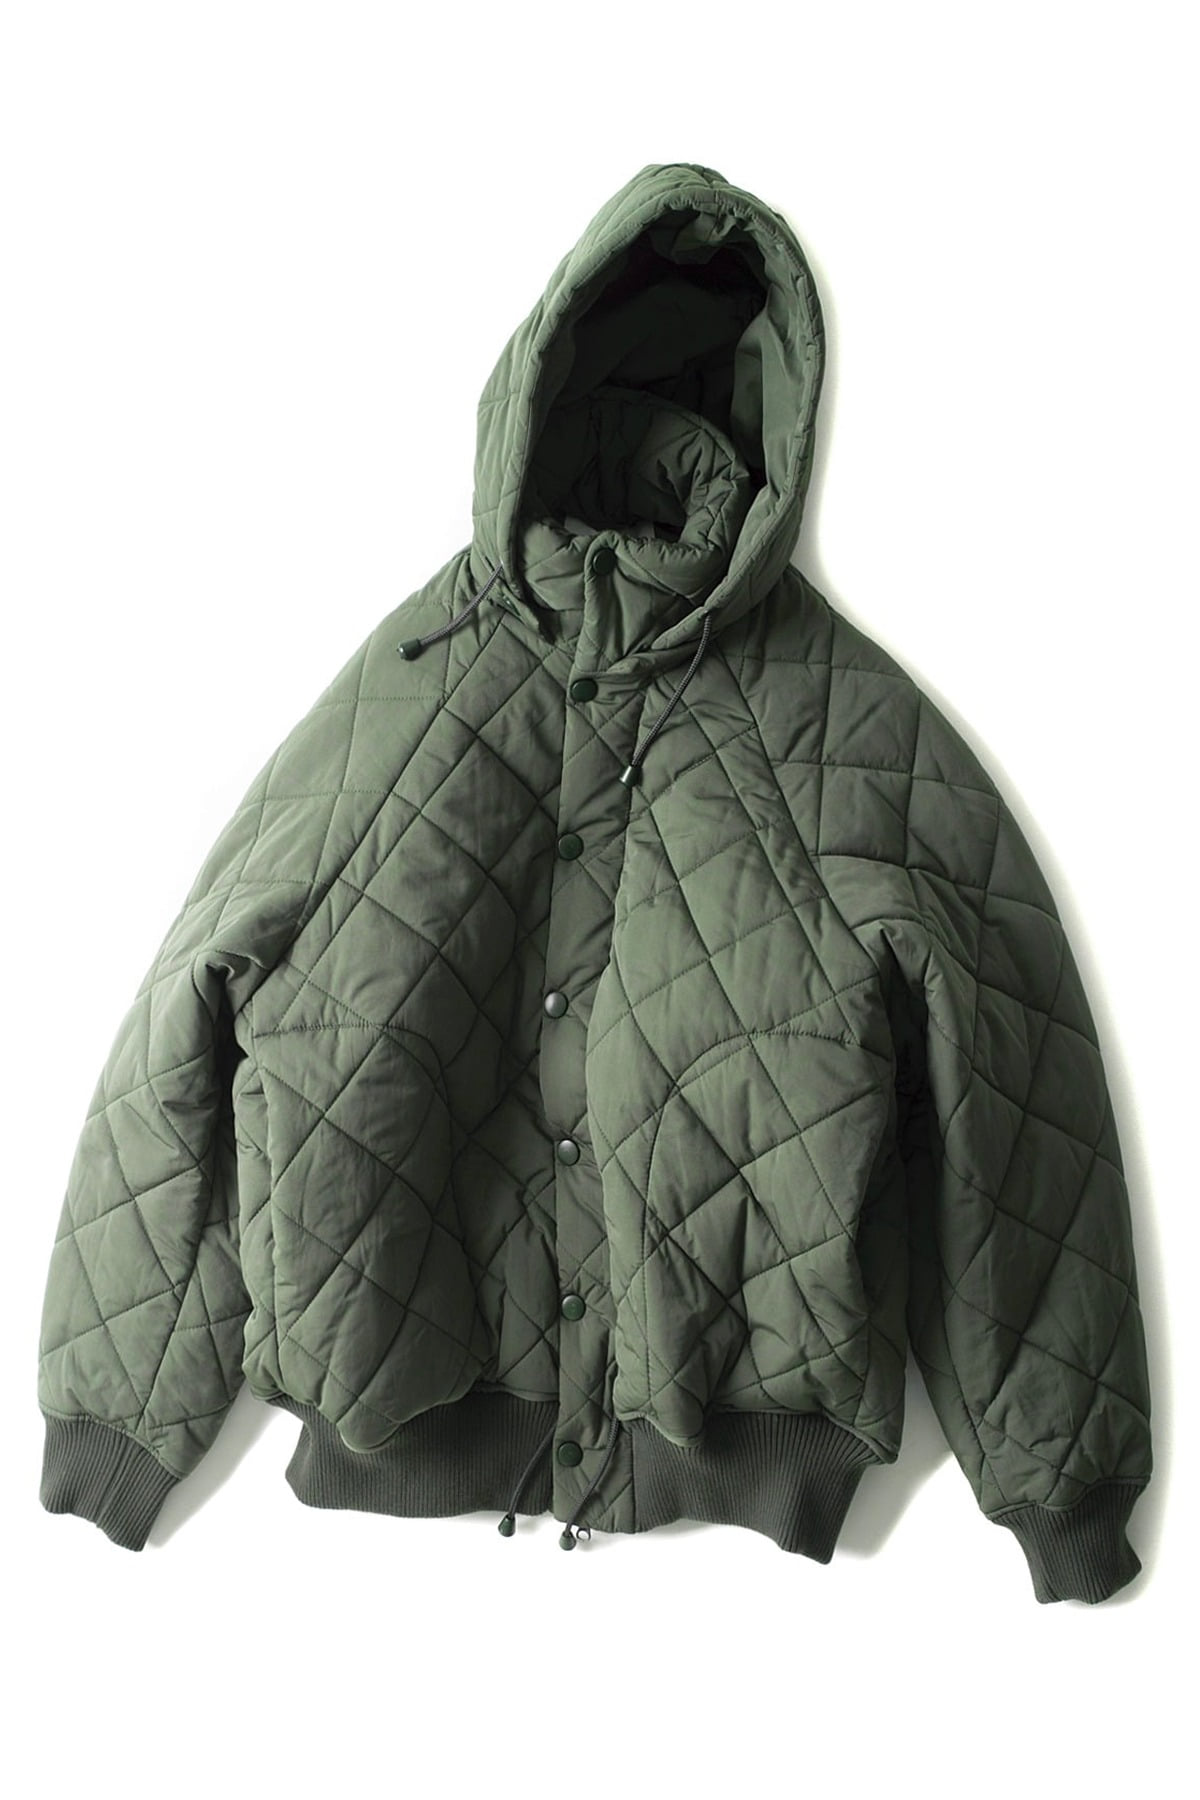 HENRIK VIBSKOV : Therefore Thermo Jacket (Green)